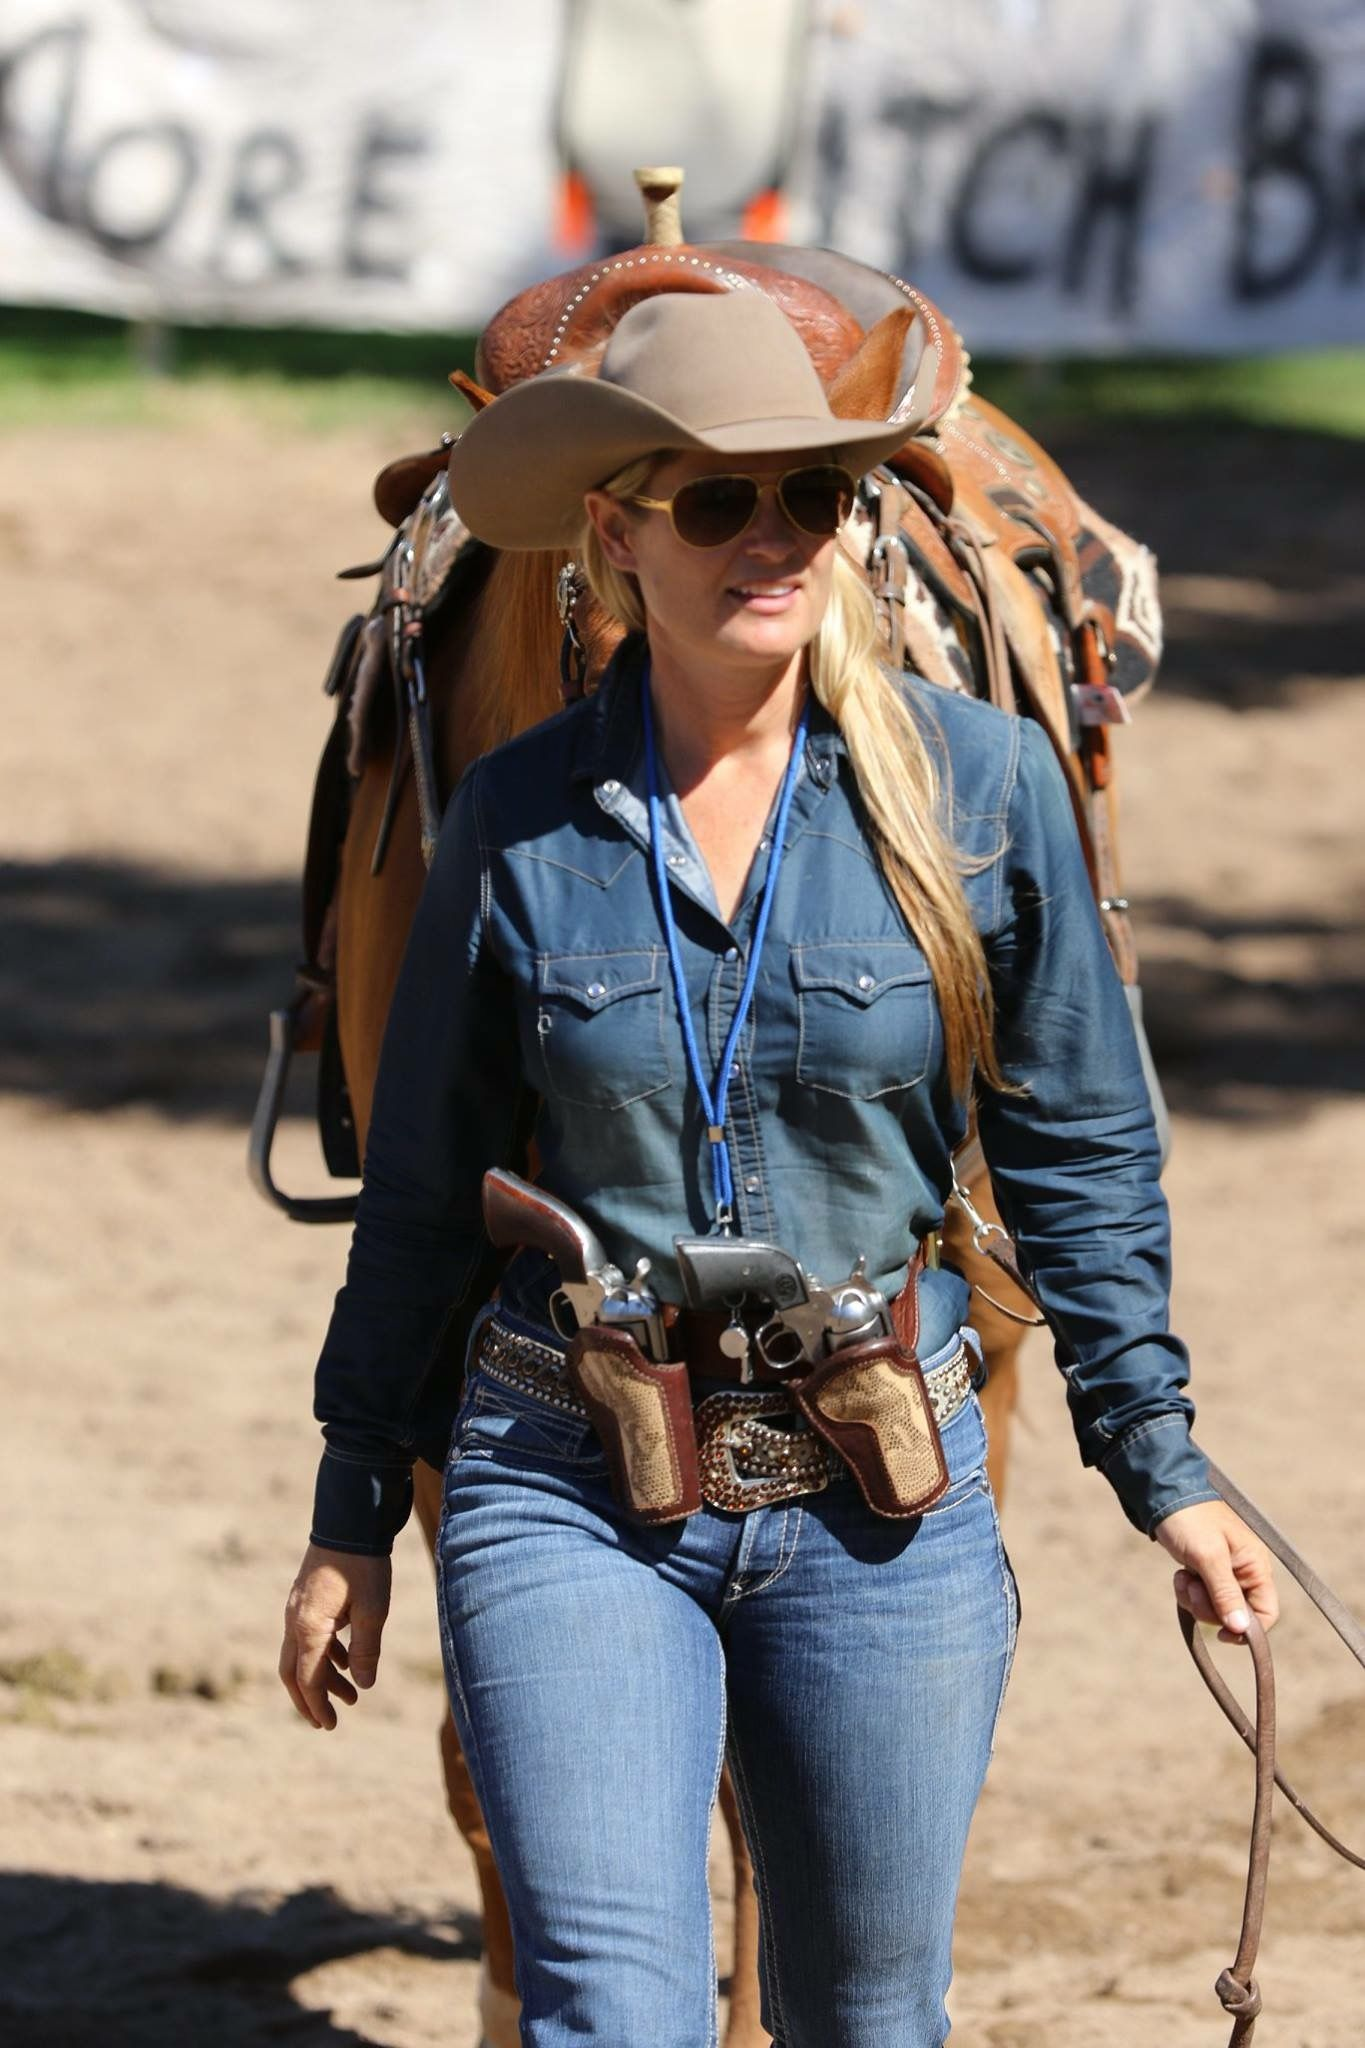 Pin on A Cowgirl's world